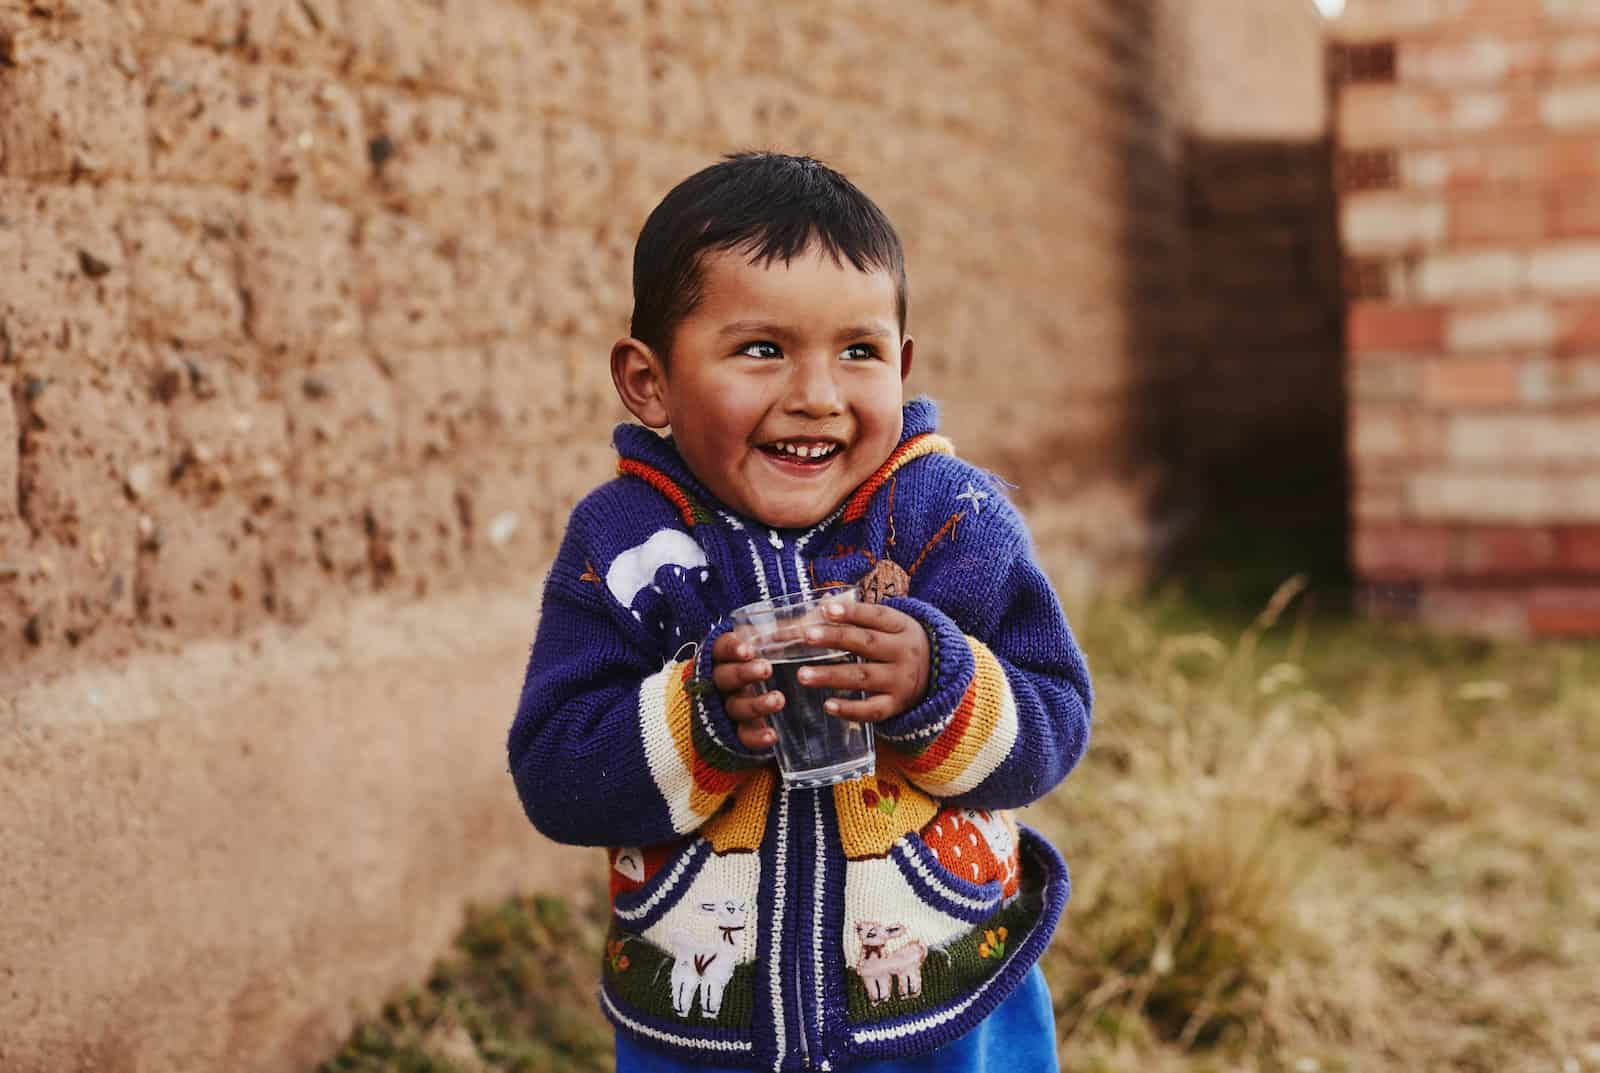 Kids Around the World: A boy in a blue sweater holds a glass of water.